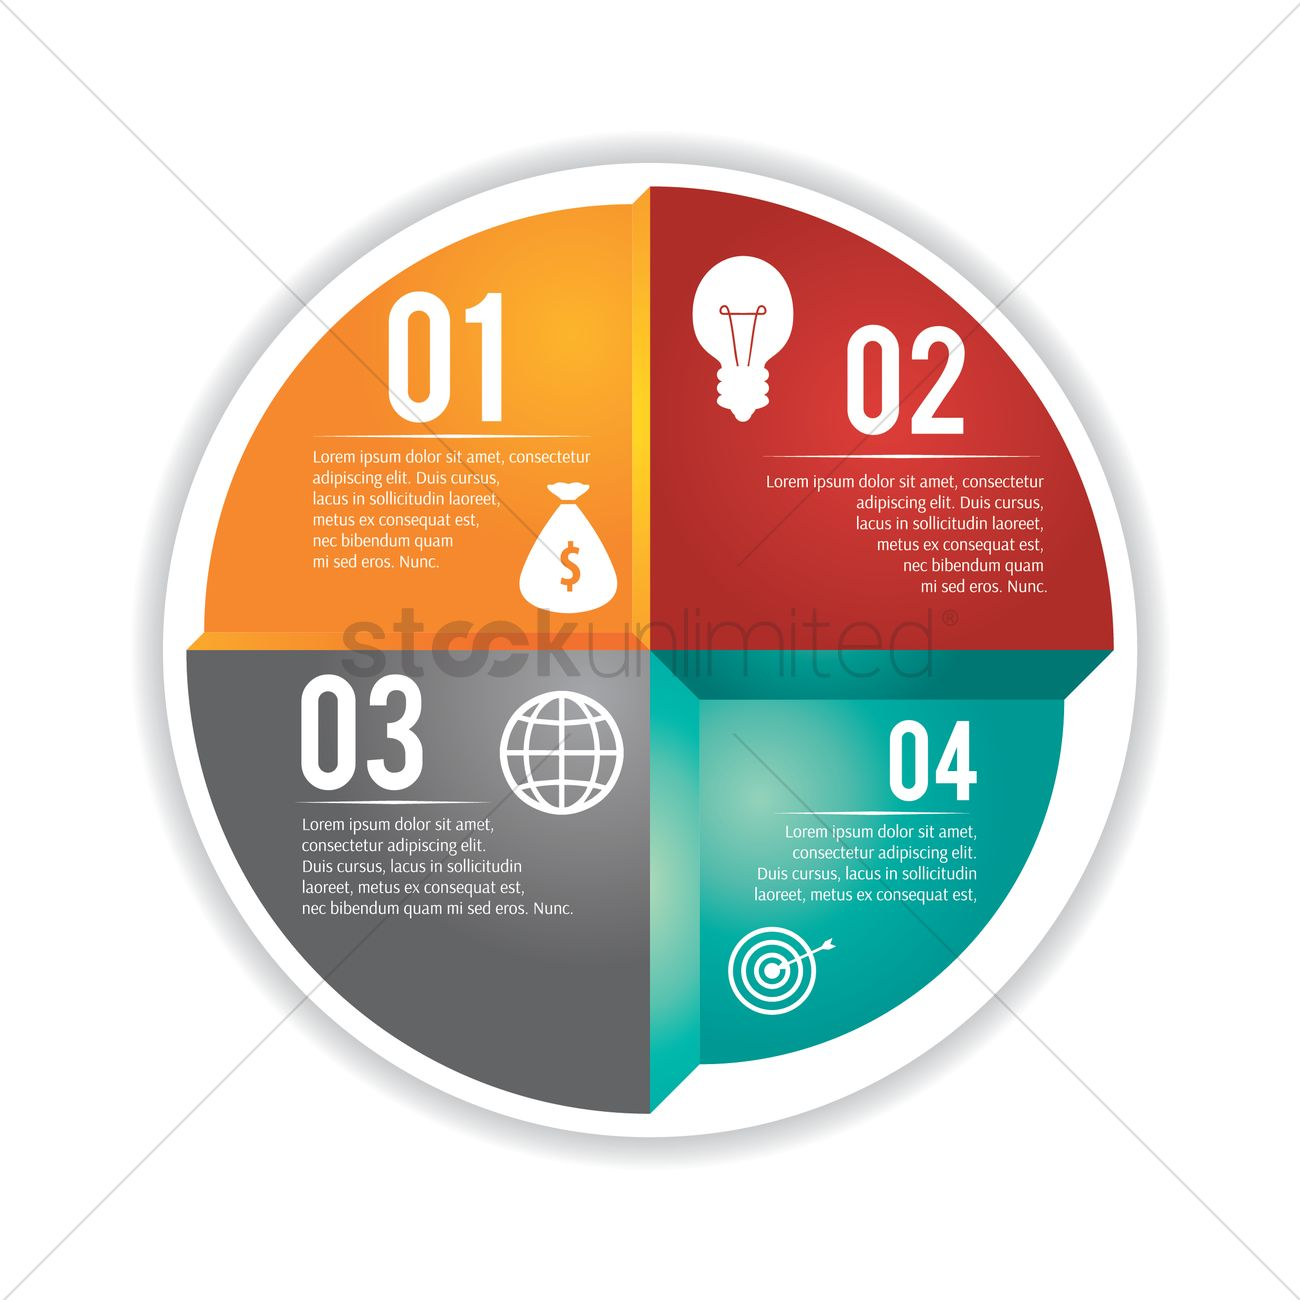 Circle Infographic Flowchart Vector Image 1990598 Stockunlimited